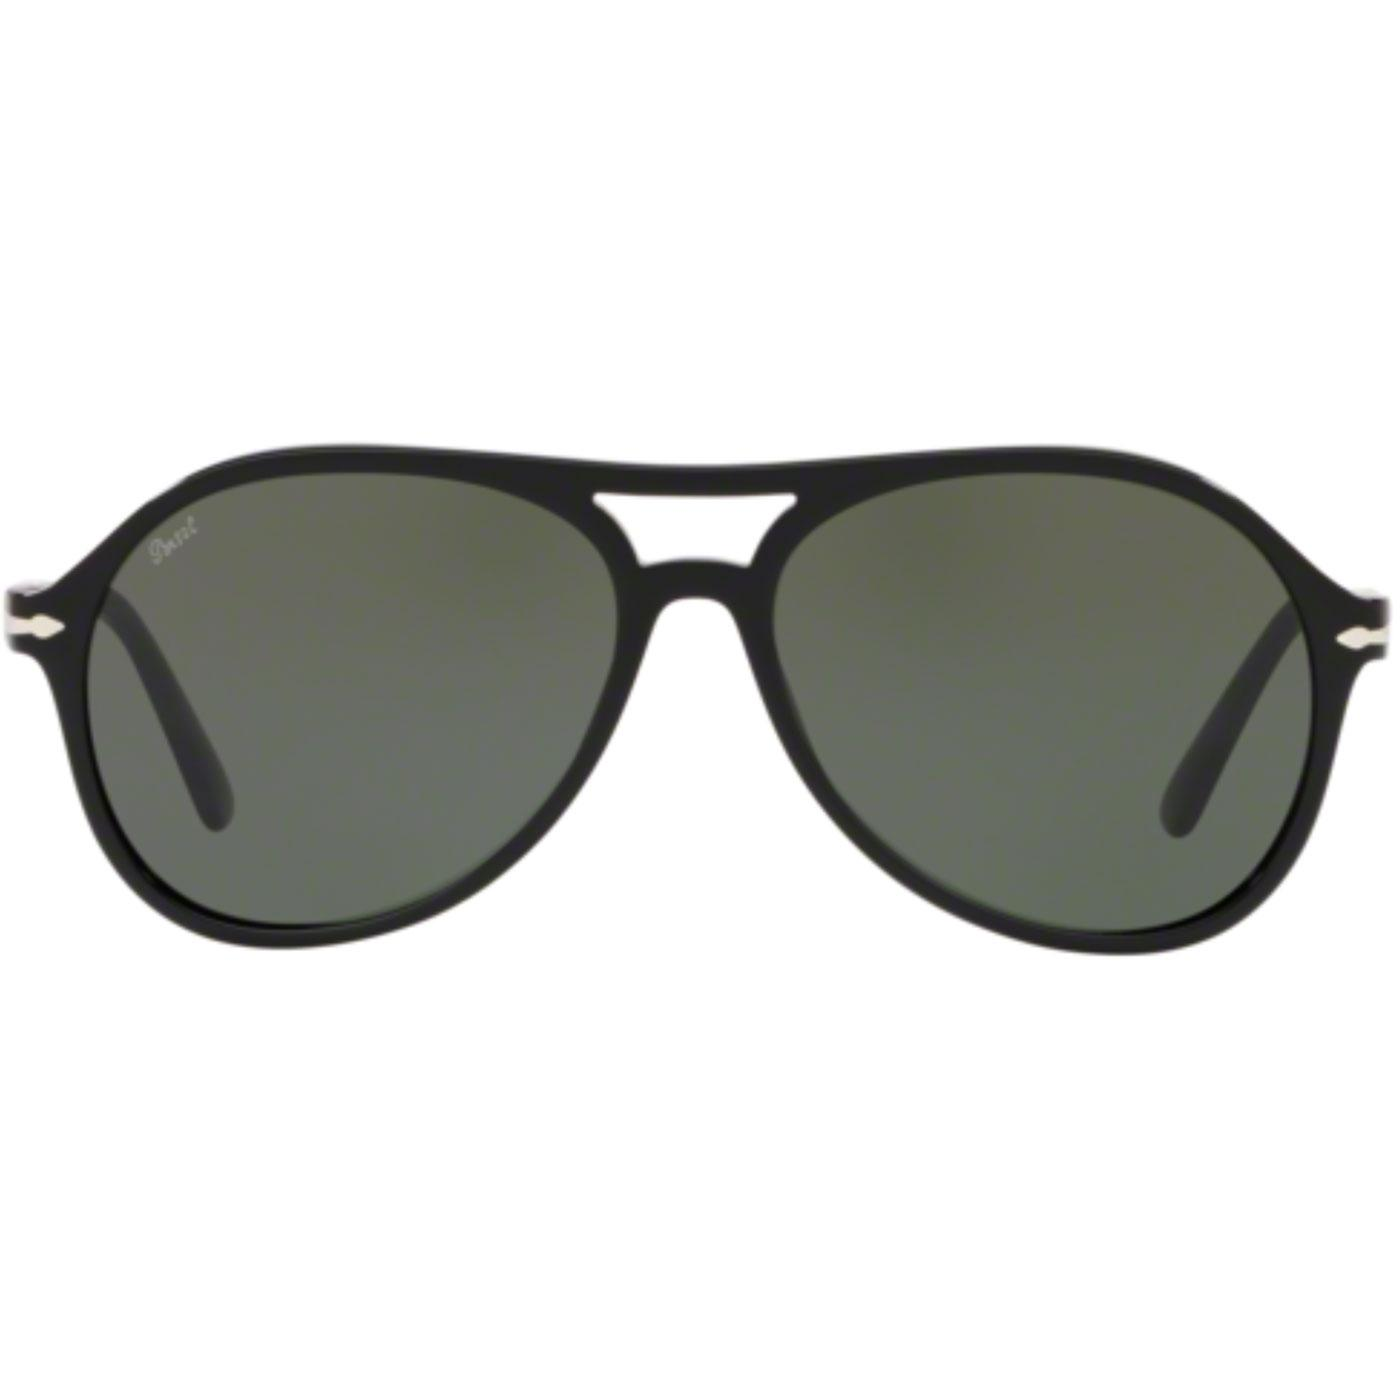 PERSOL Men's Retro 70s Aviator Sunglasses in Black